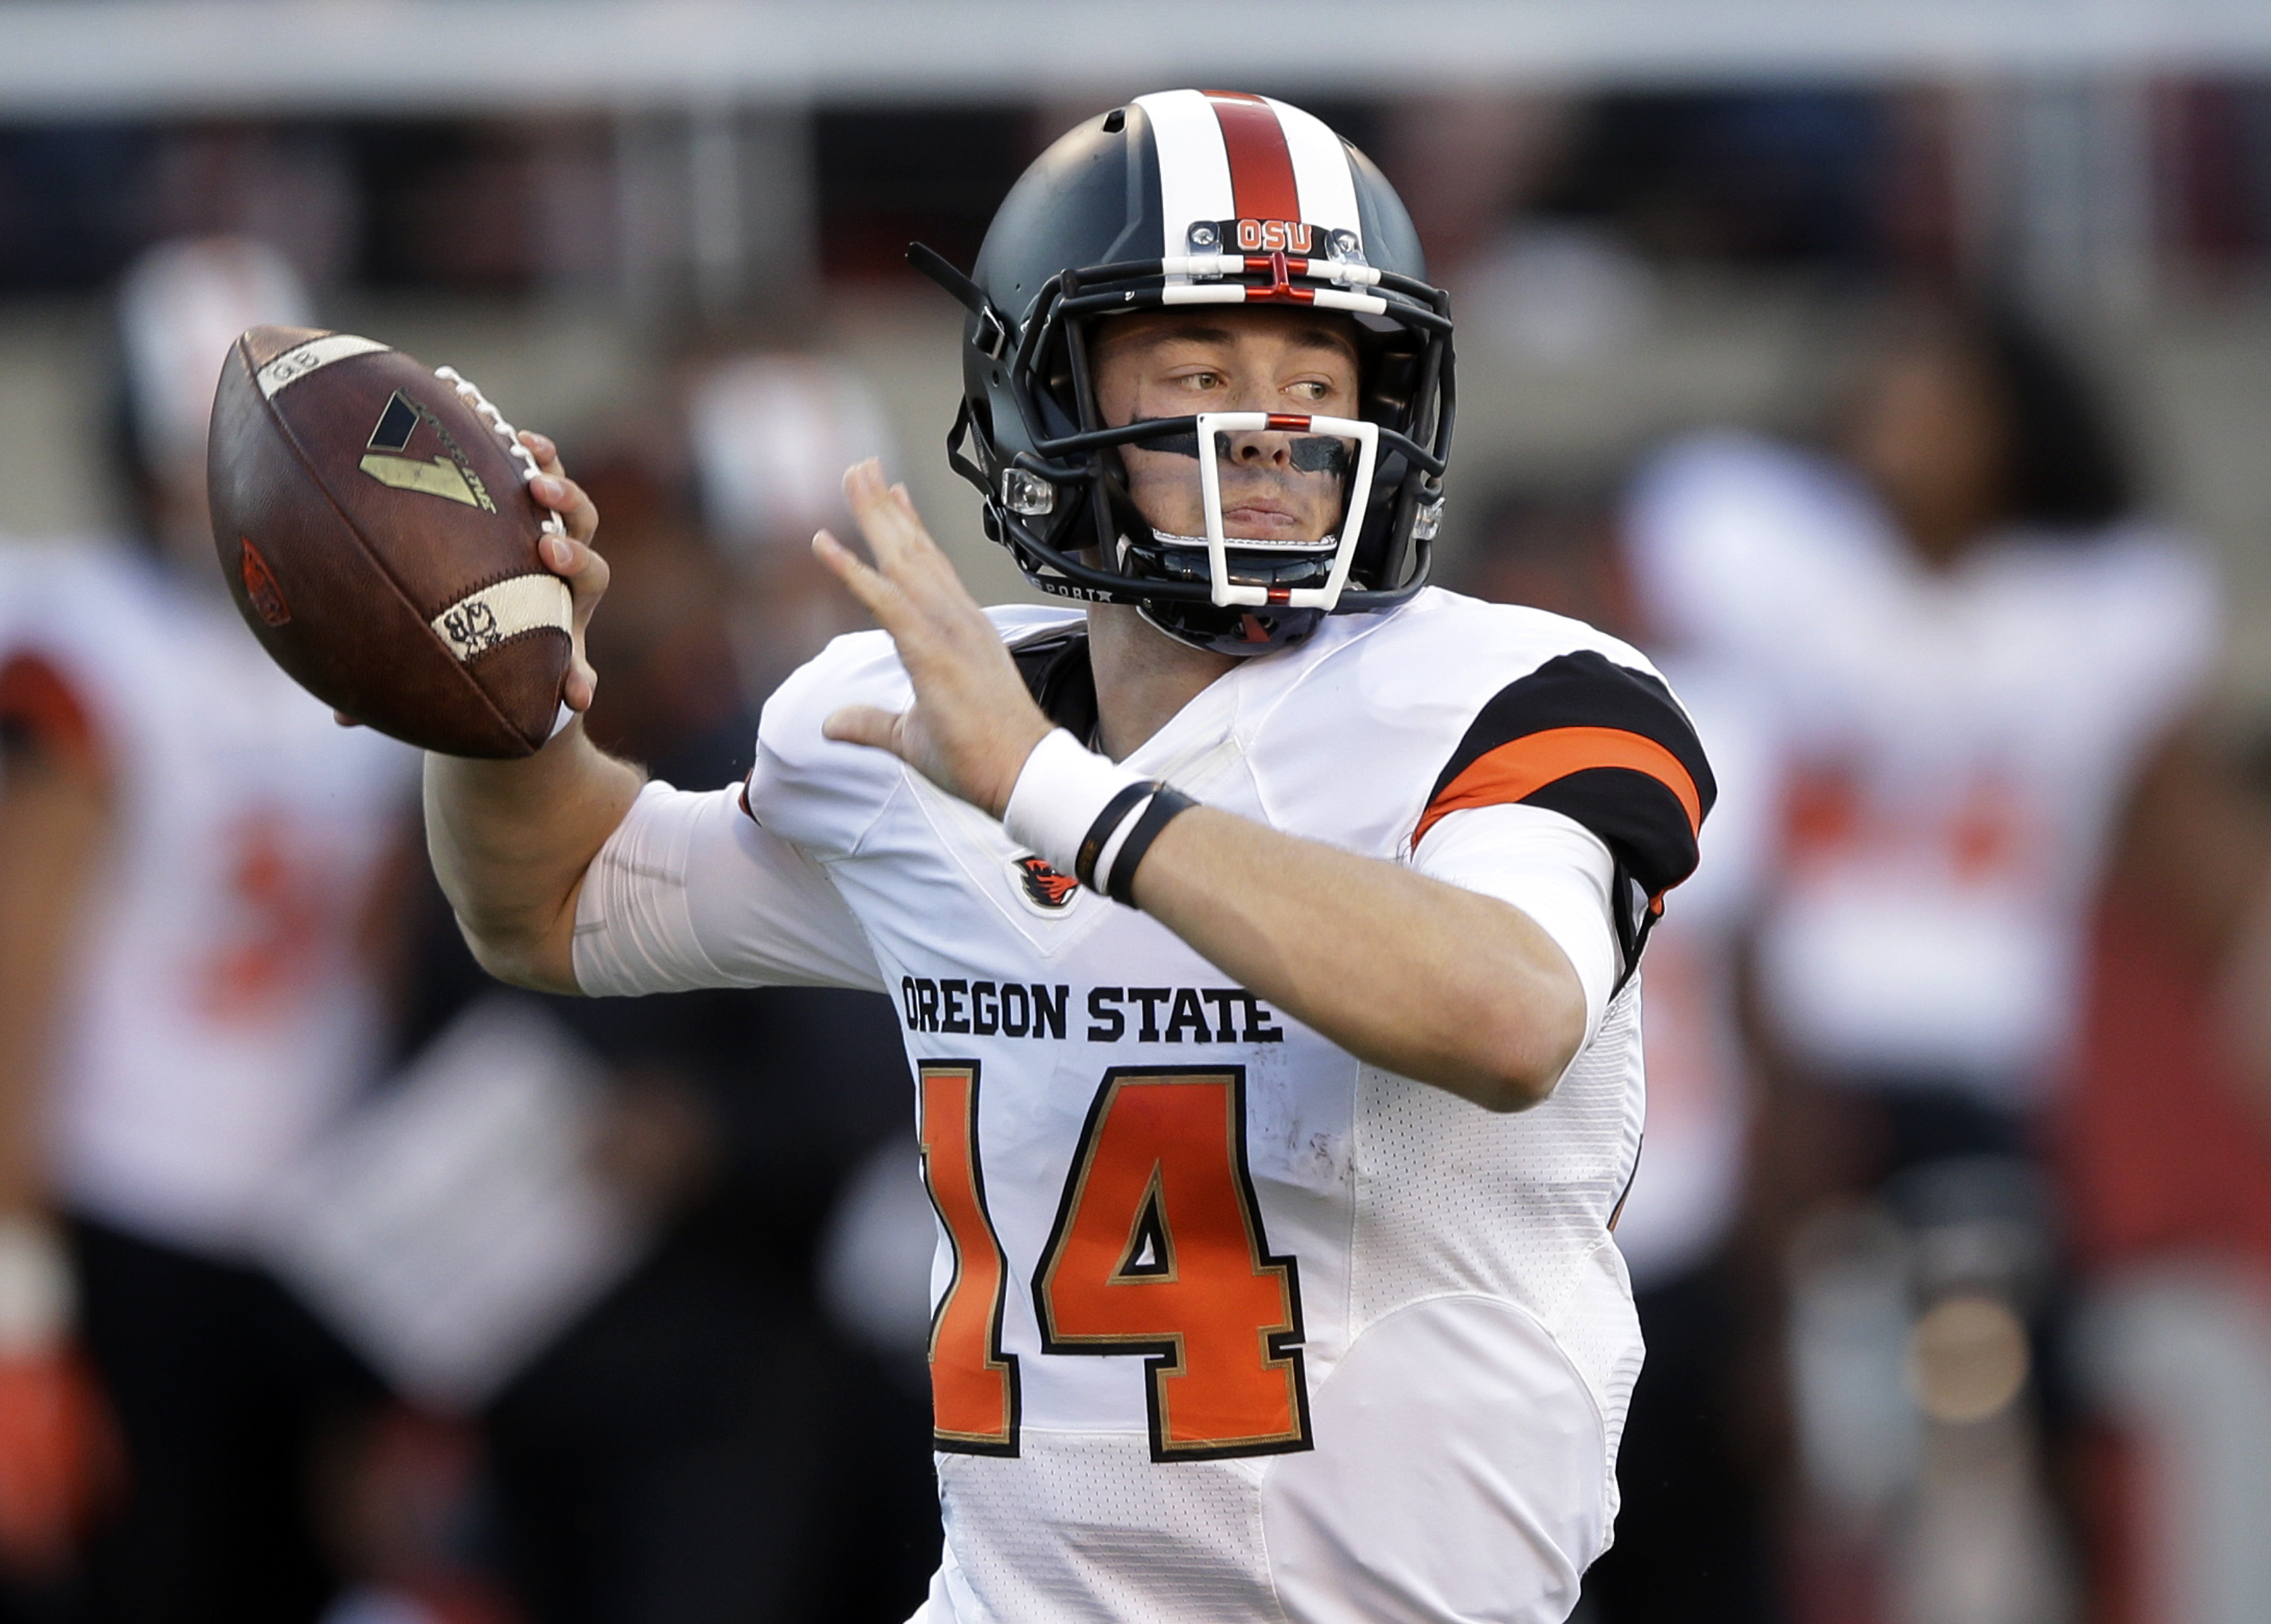 FILE - In this Oct. 31, 2015, file photo, Oregon State quarterback Nick Mitchell prepares to pass the ball against Utah in the first quarter during an NCAA college football game, in Salt Lake City. Mitchell's first tests at starting quarterback for Oregon